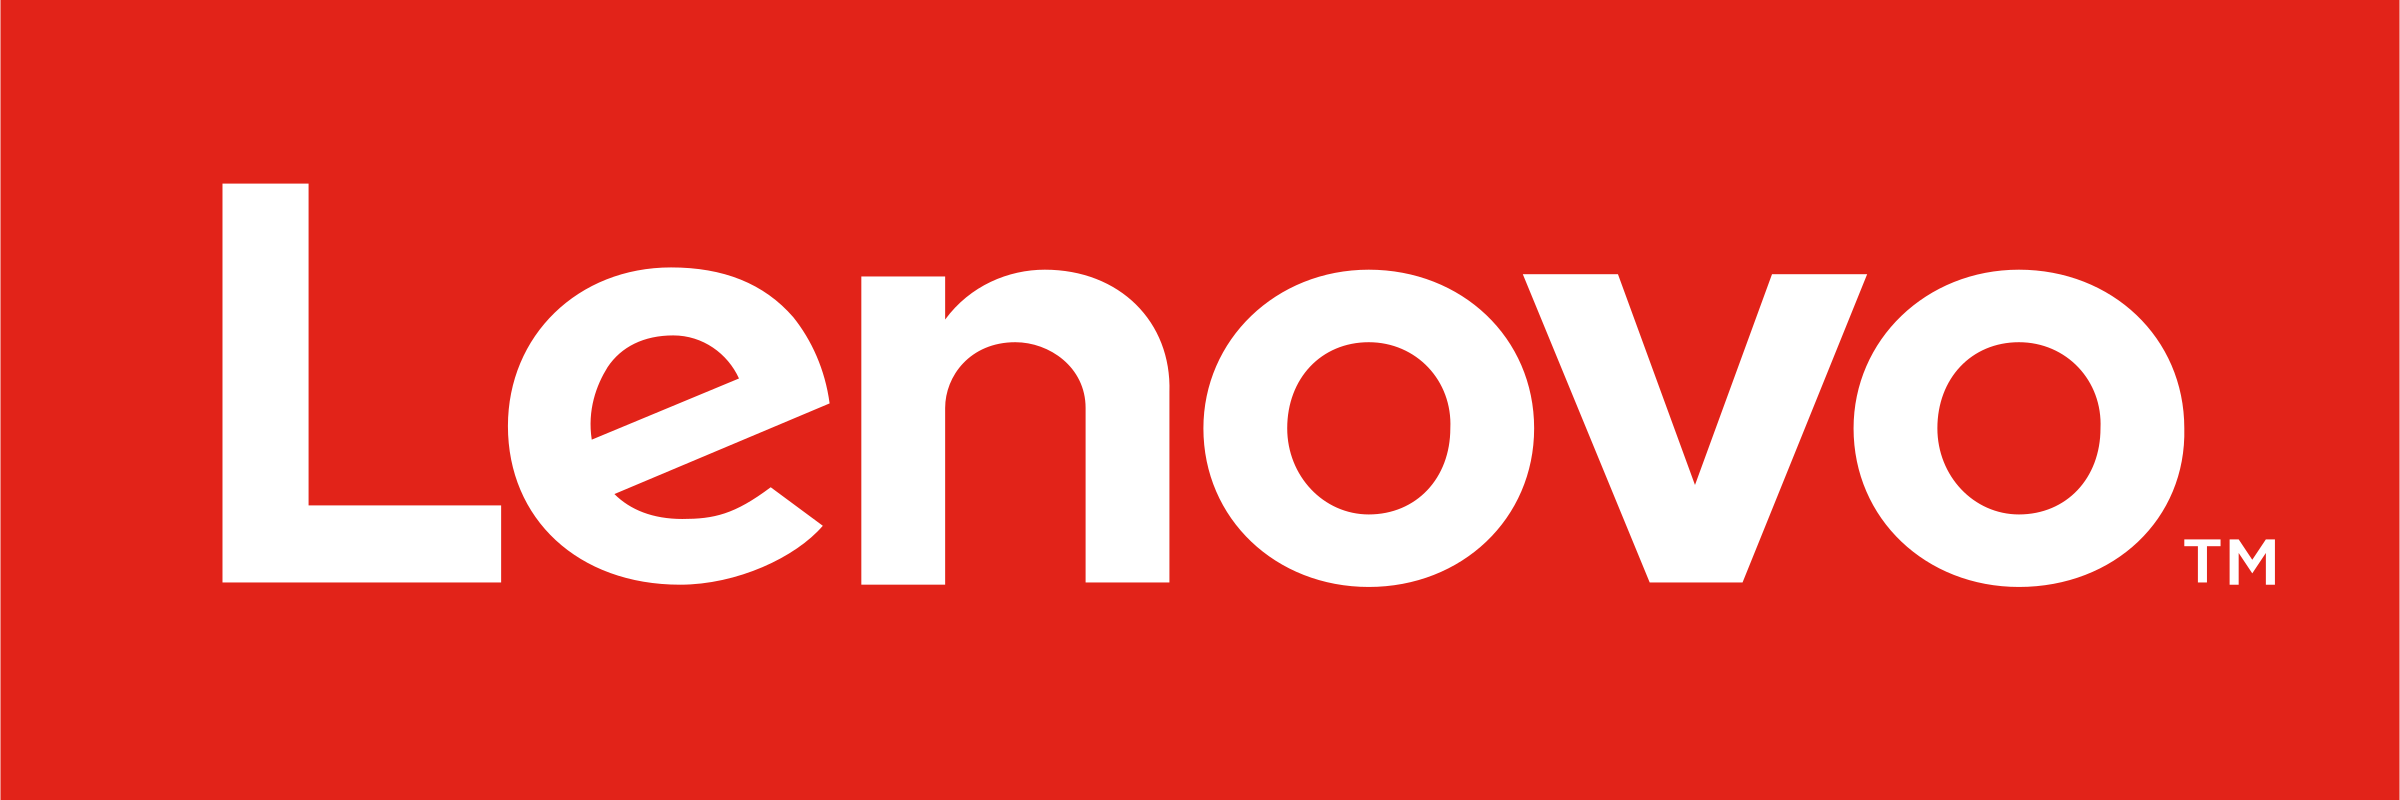 lenovo-uk-logo